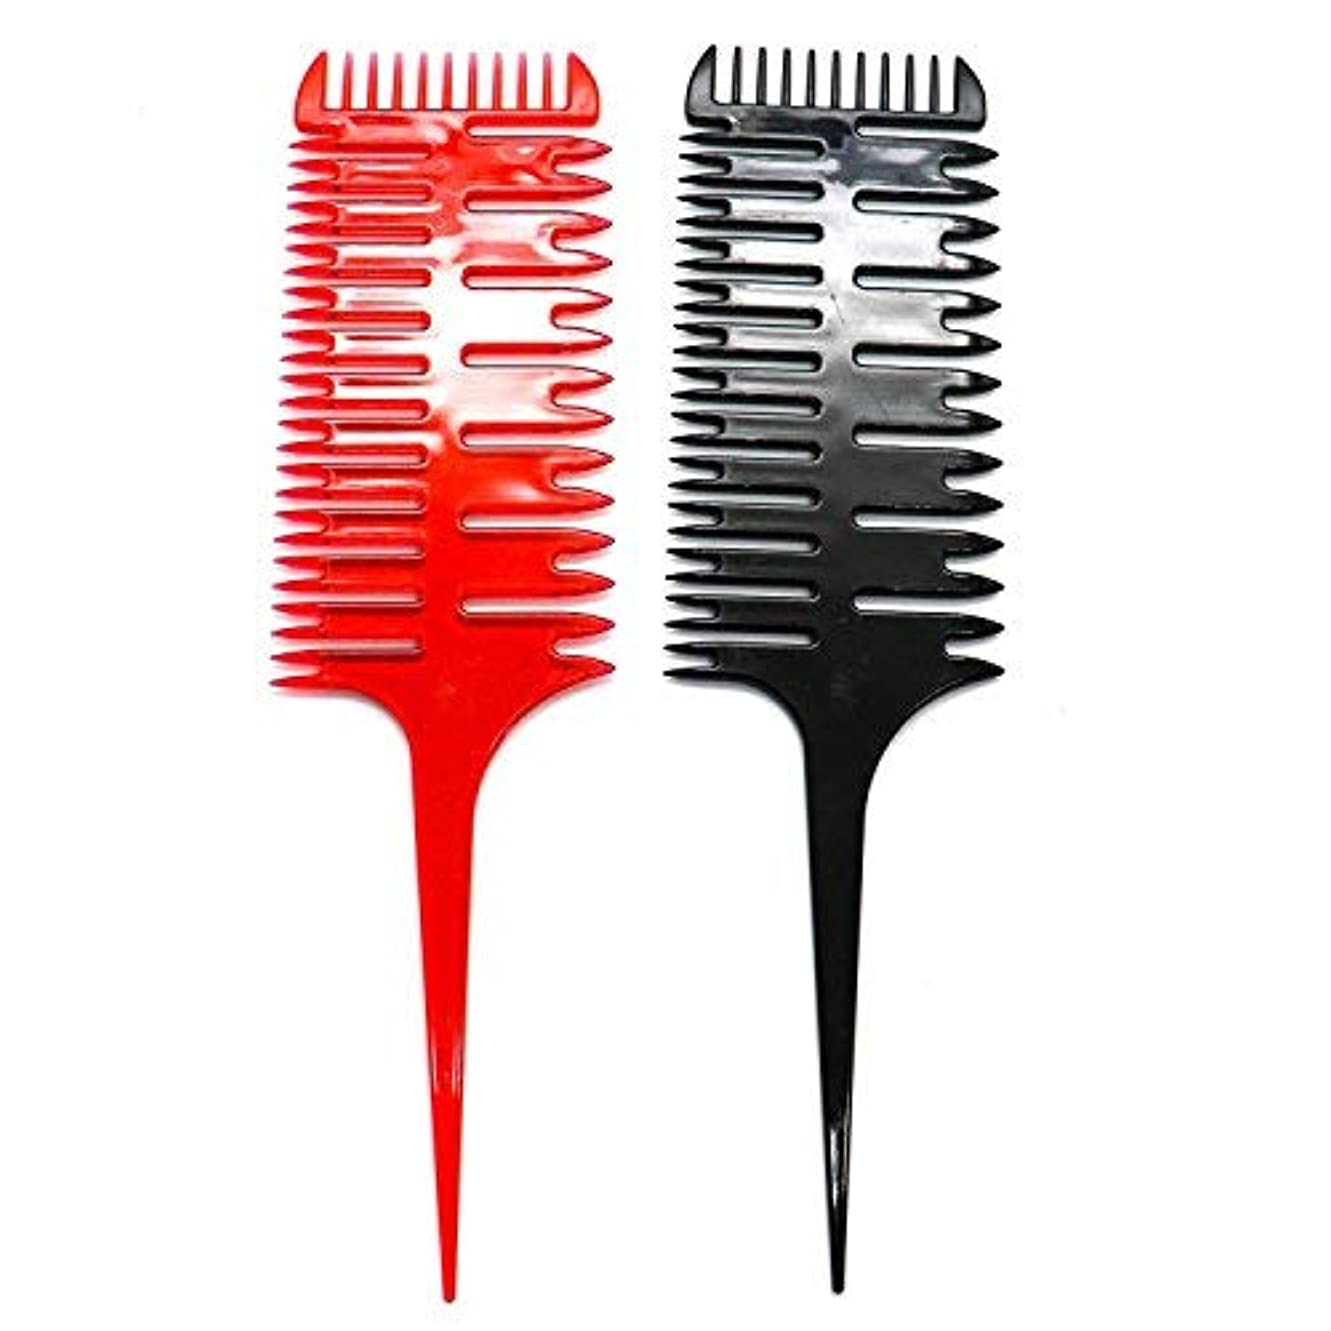 キャンプ高原部屋を掃除するHUELE 2 Pcs Professional 3-Way Hair Combs Weaving & Sectioning Foiling Comb for Hair Black+Red [並行輸入品]